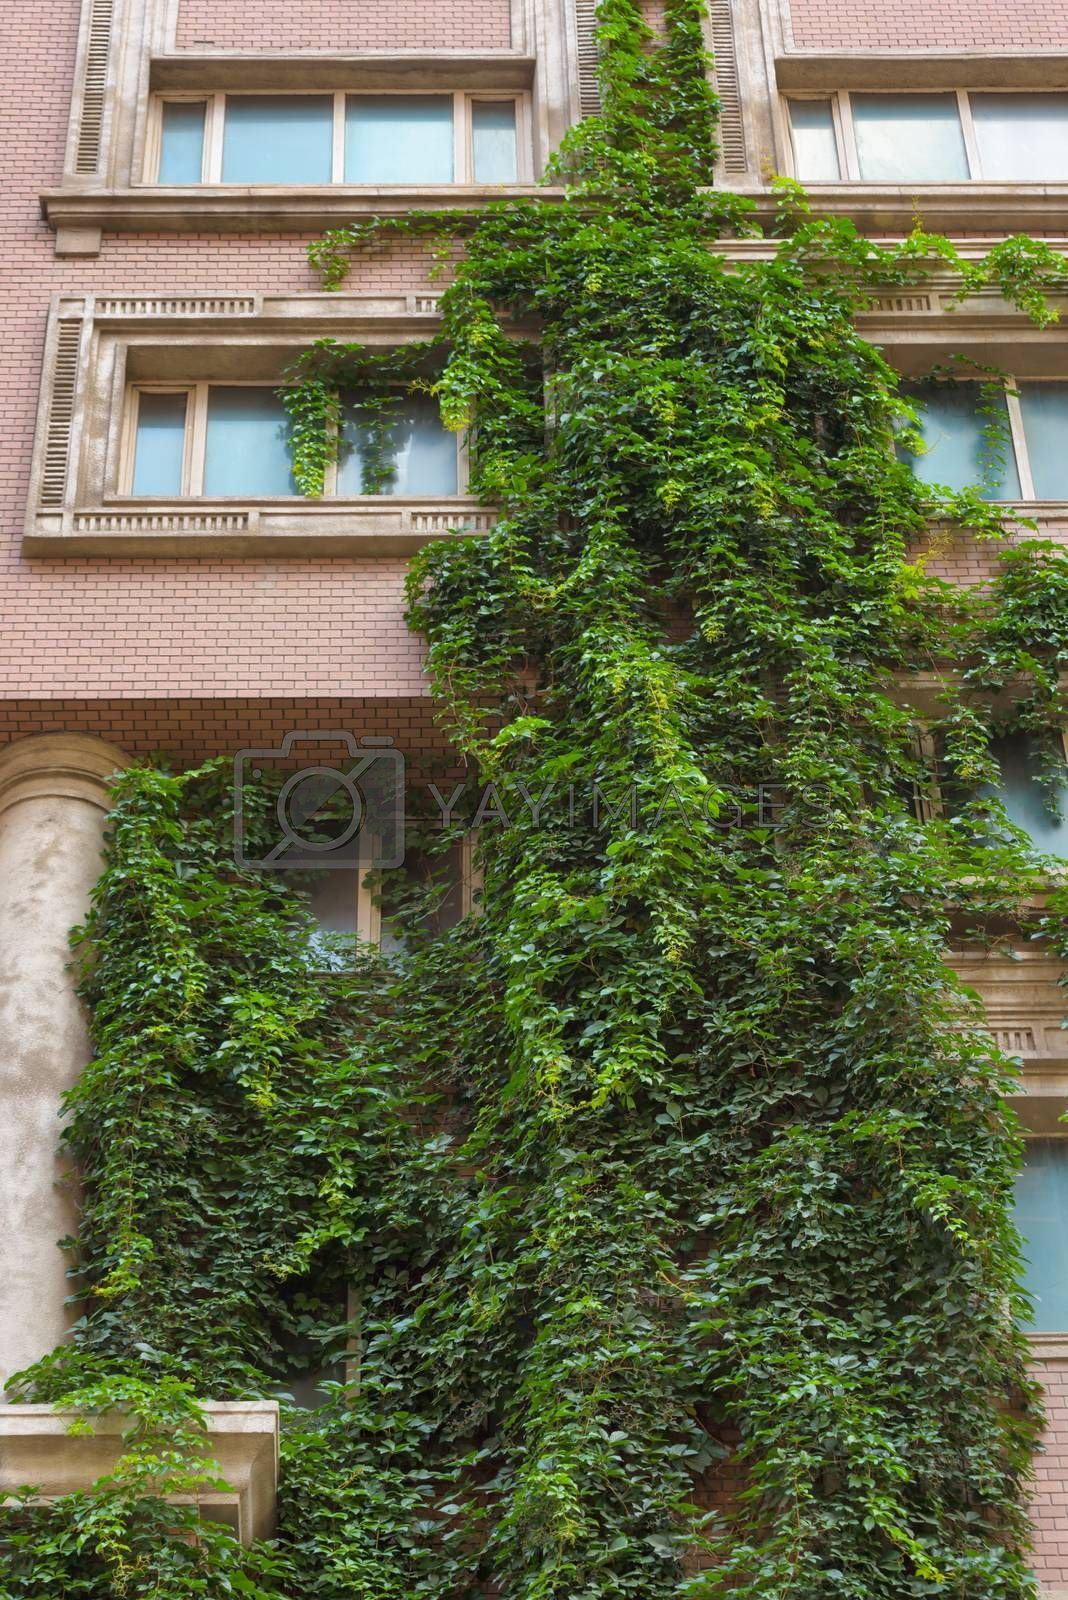 Green building with plants growing on the facade. Green living wall